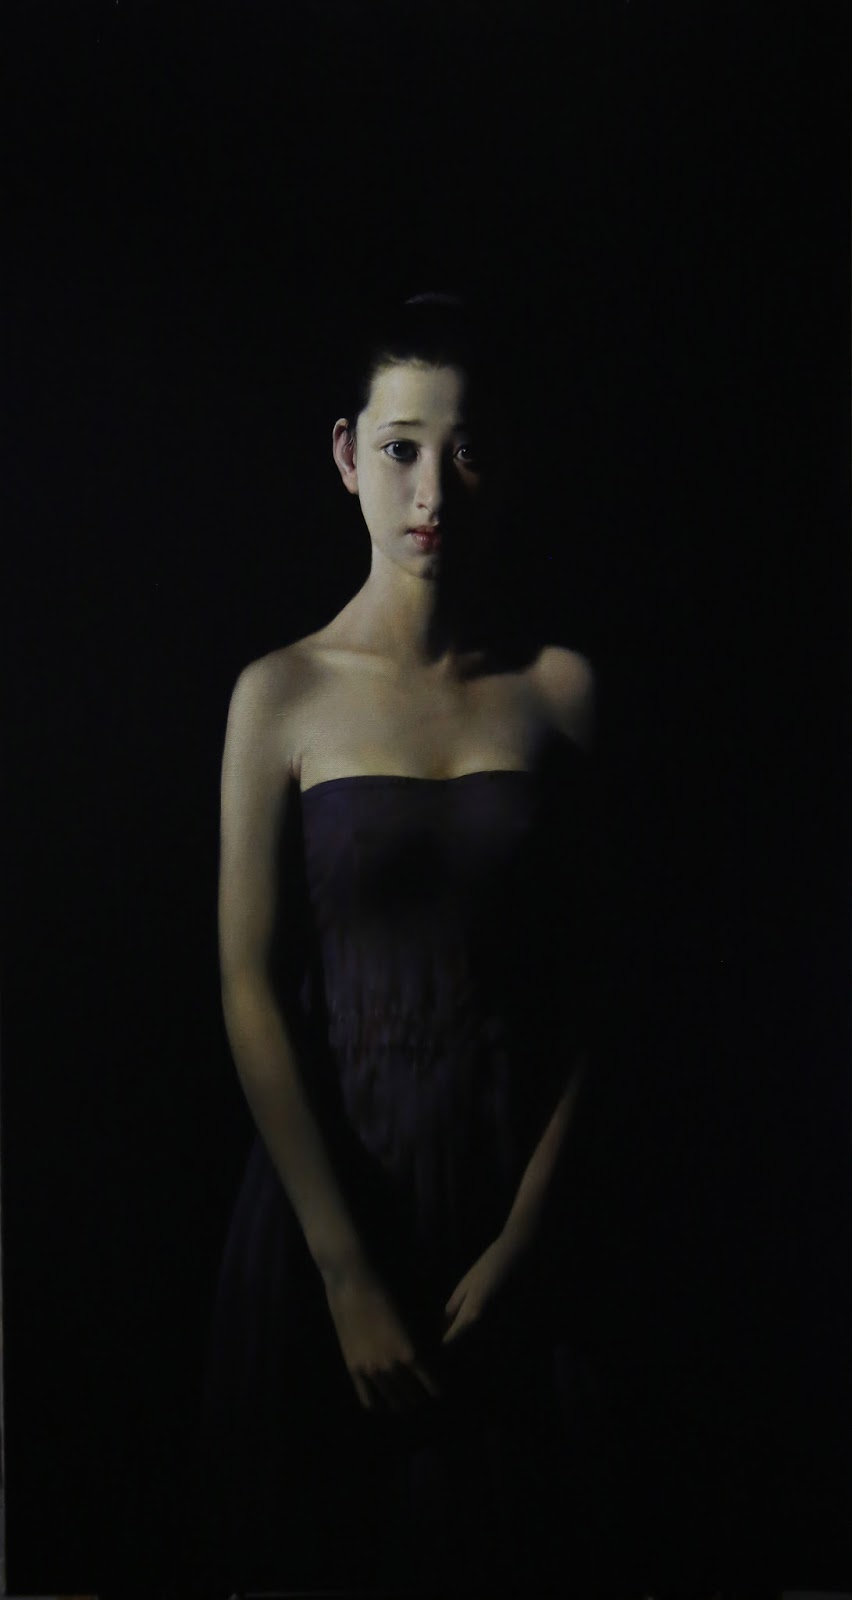 Paintings by 朴承浩(Piao Chenhao)